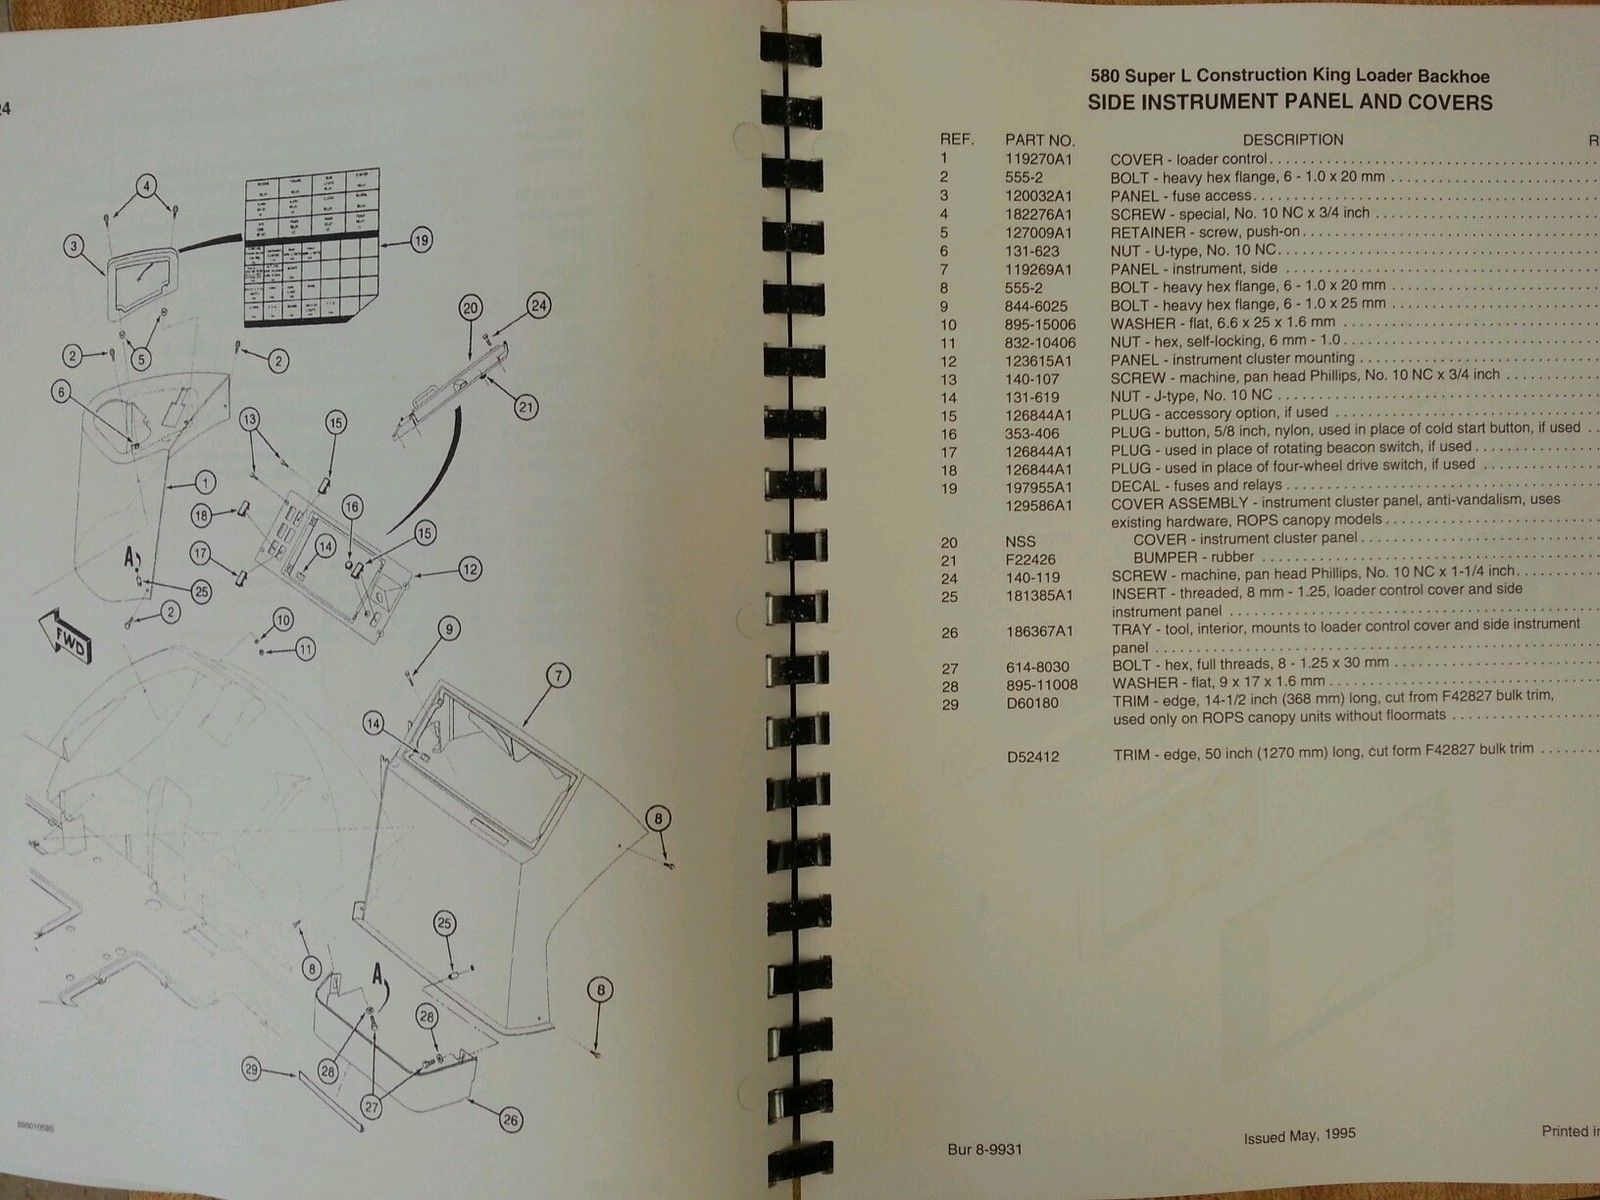 case 580 wiring diagram wiring diagram shrutiradio sd423452467 case 580  super l 580sl loader backhoe parts manual book 8 9931 4 case 580